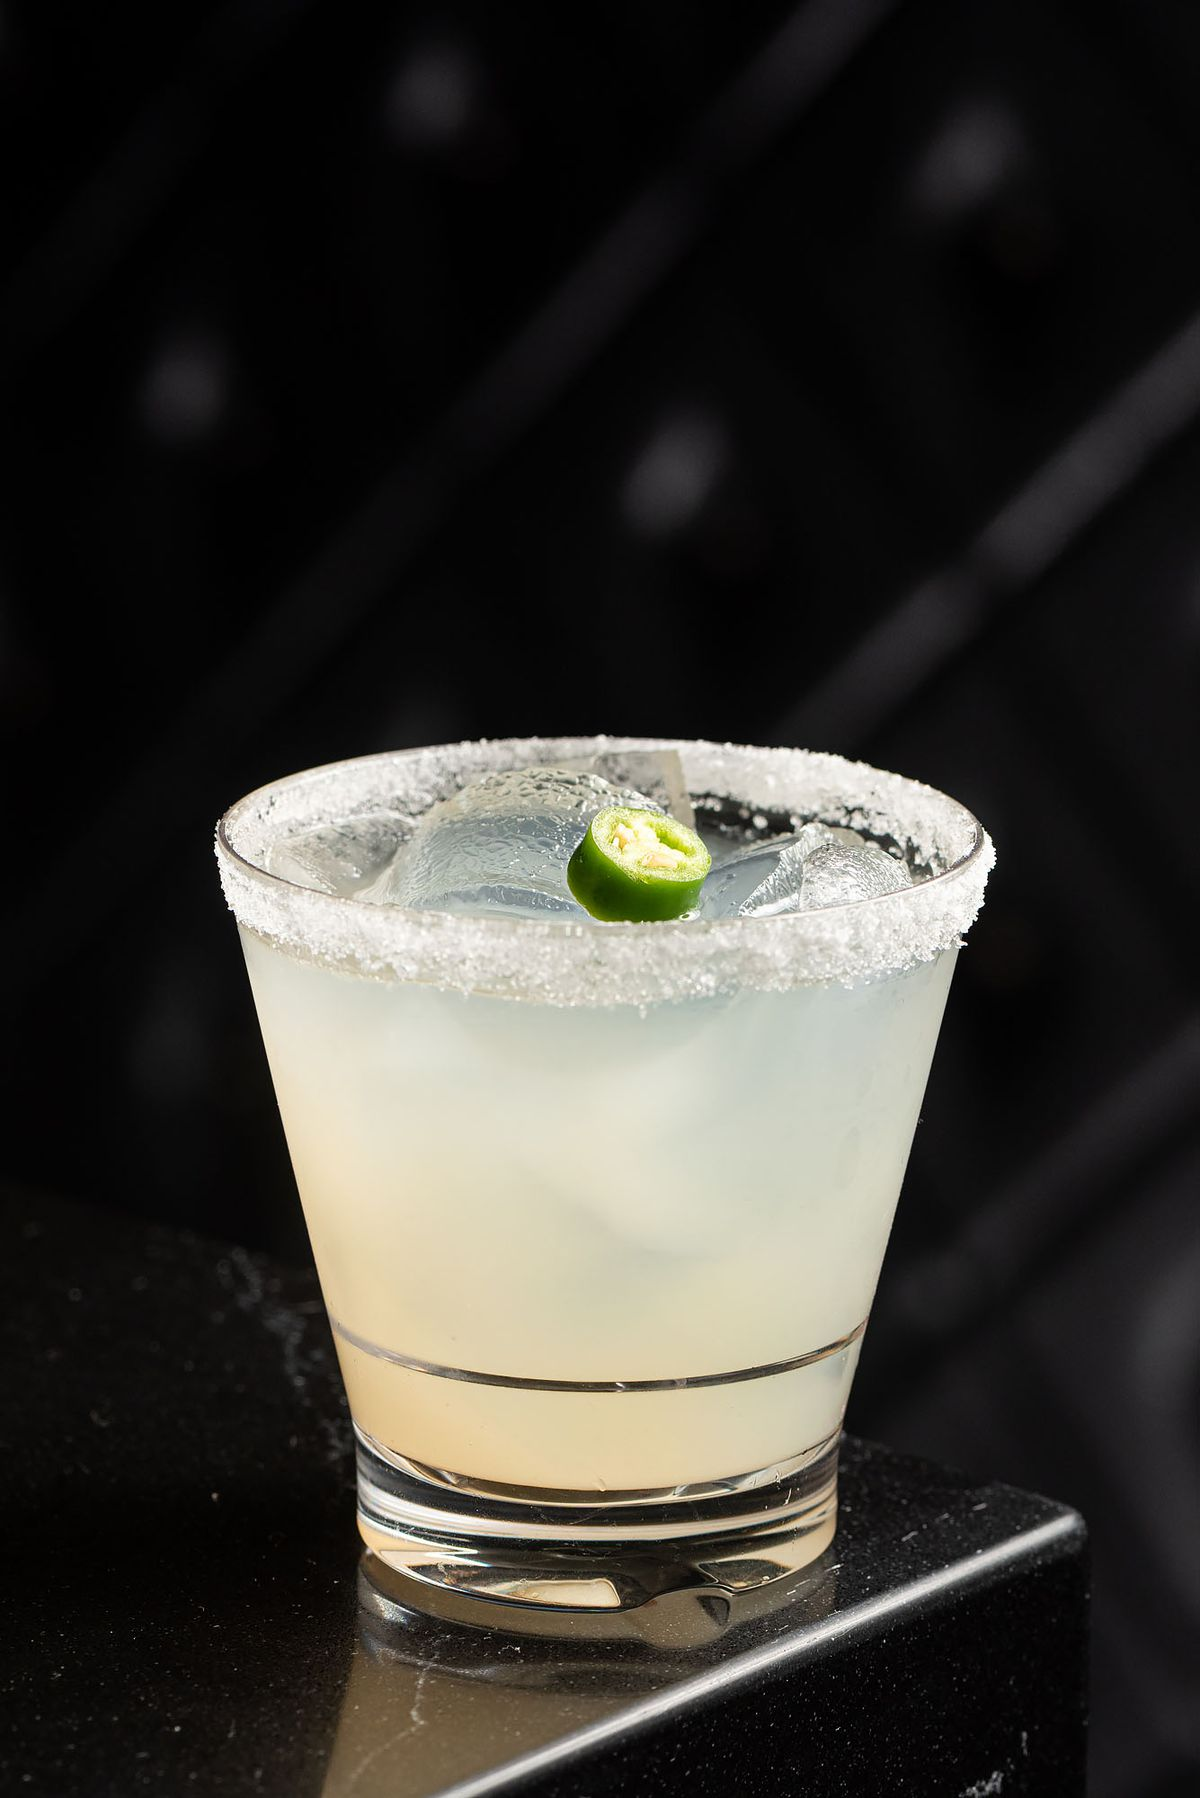 A light white cocktail with salted rim.